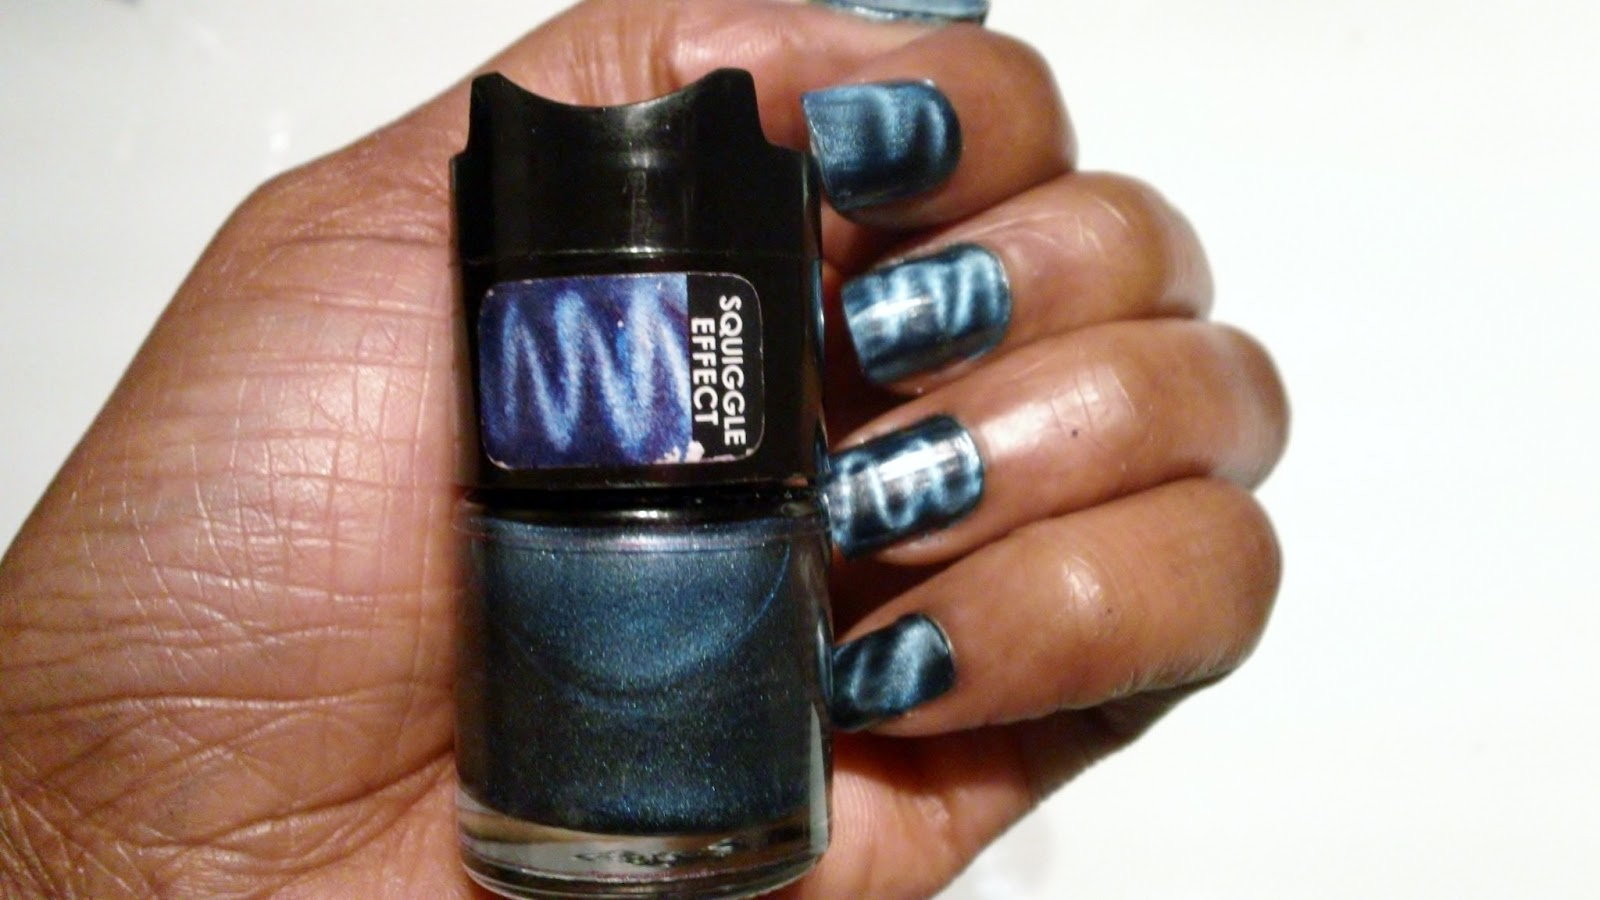 Mayfair, MUA Metallic Nail Polish